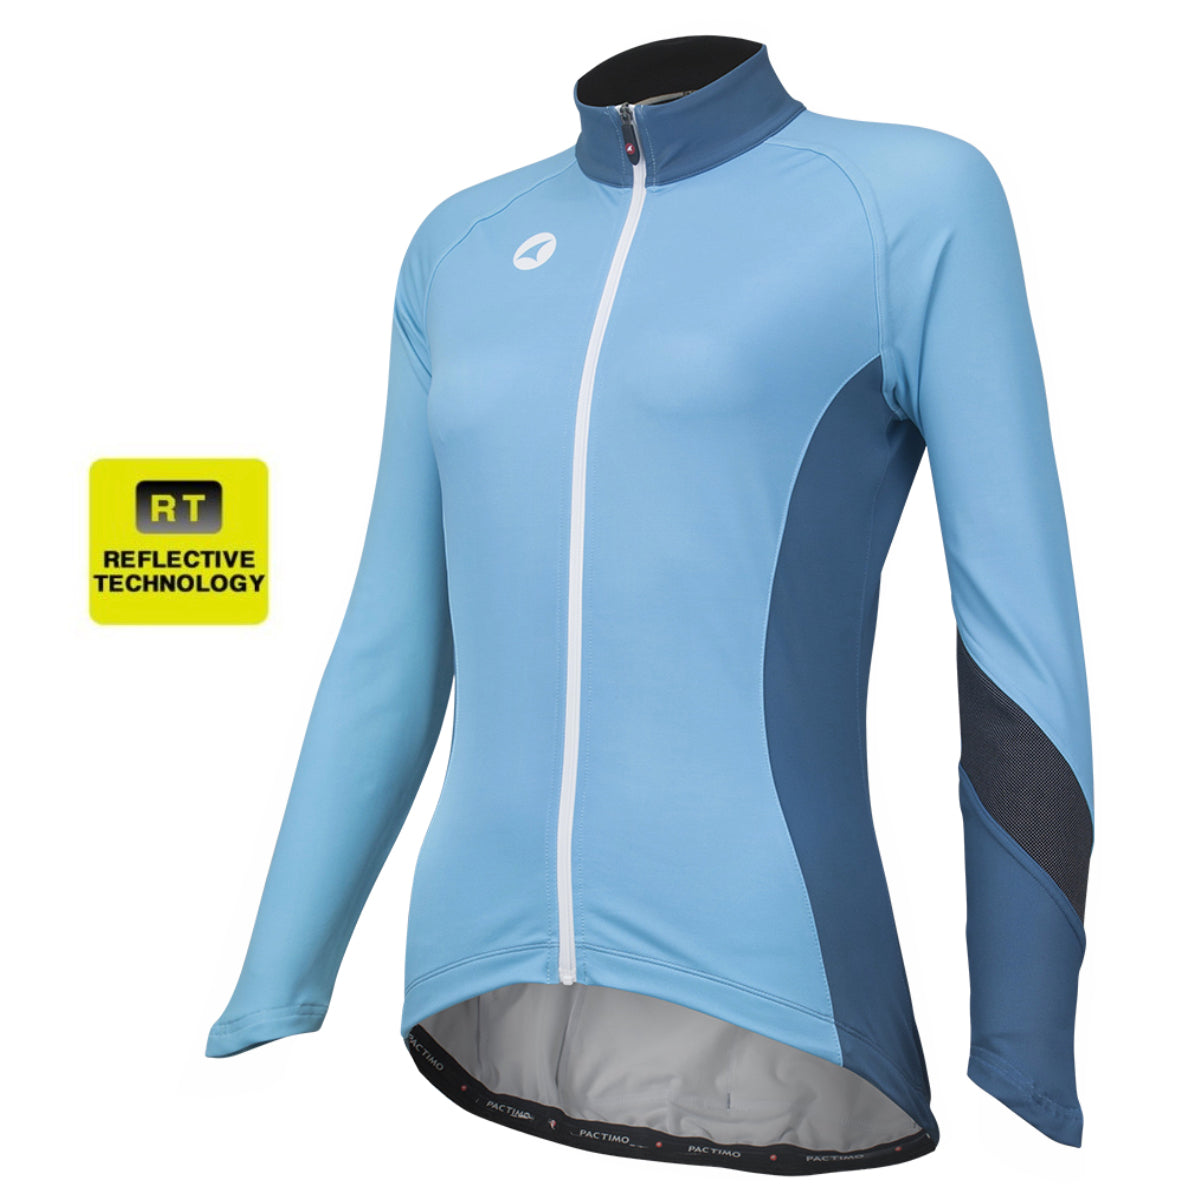 3165ba9ab Alpine Thermal Reflective Cycling Jersey for Women - Pactimo